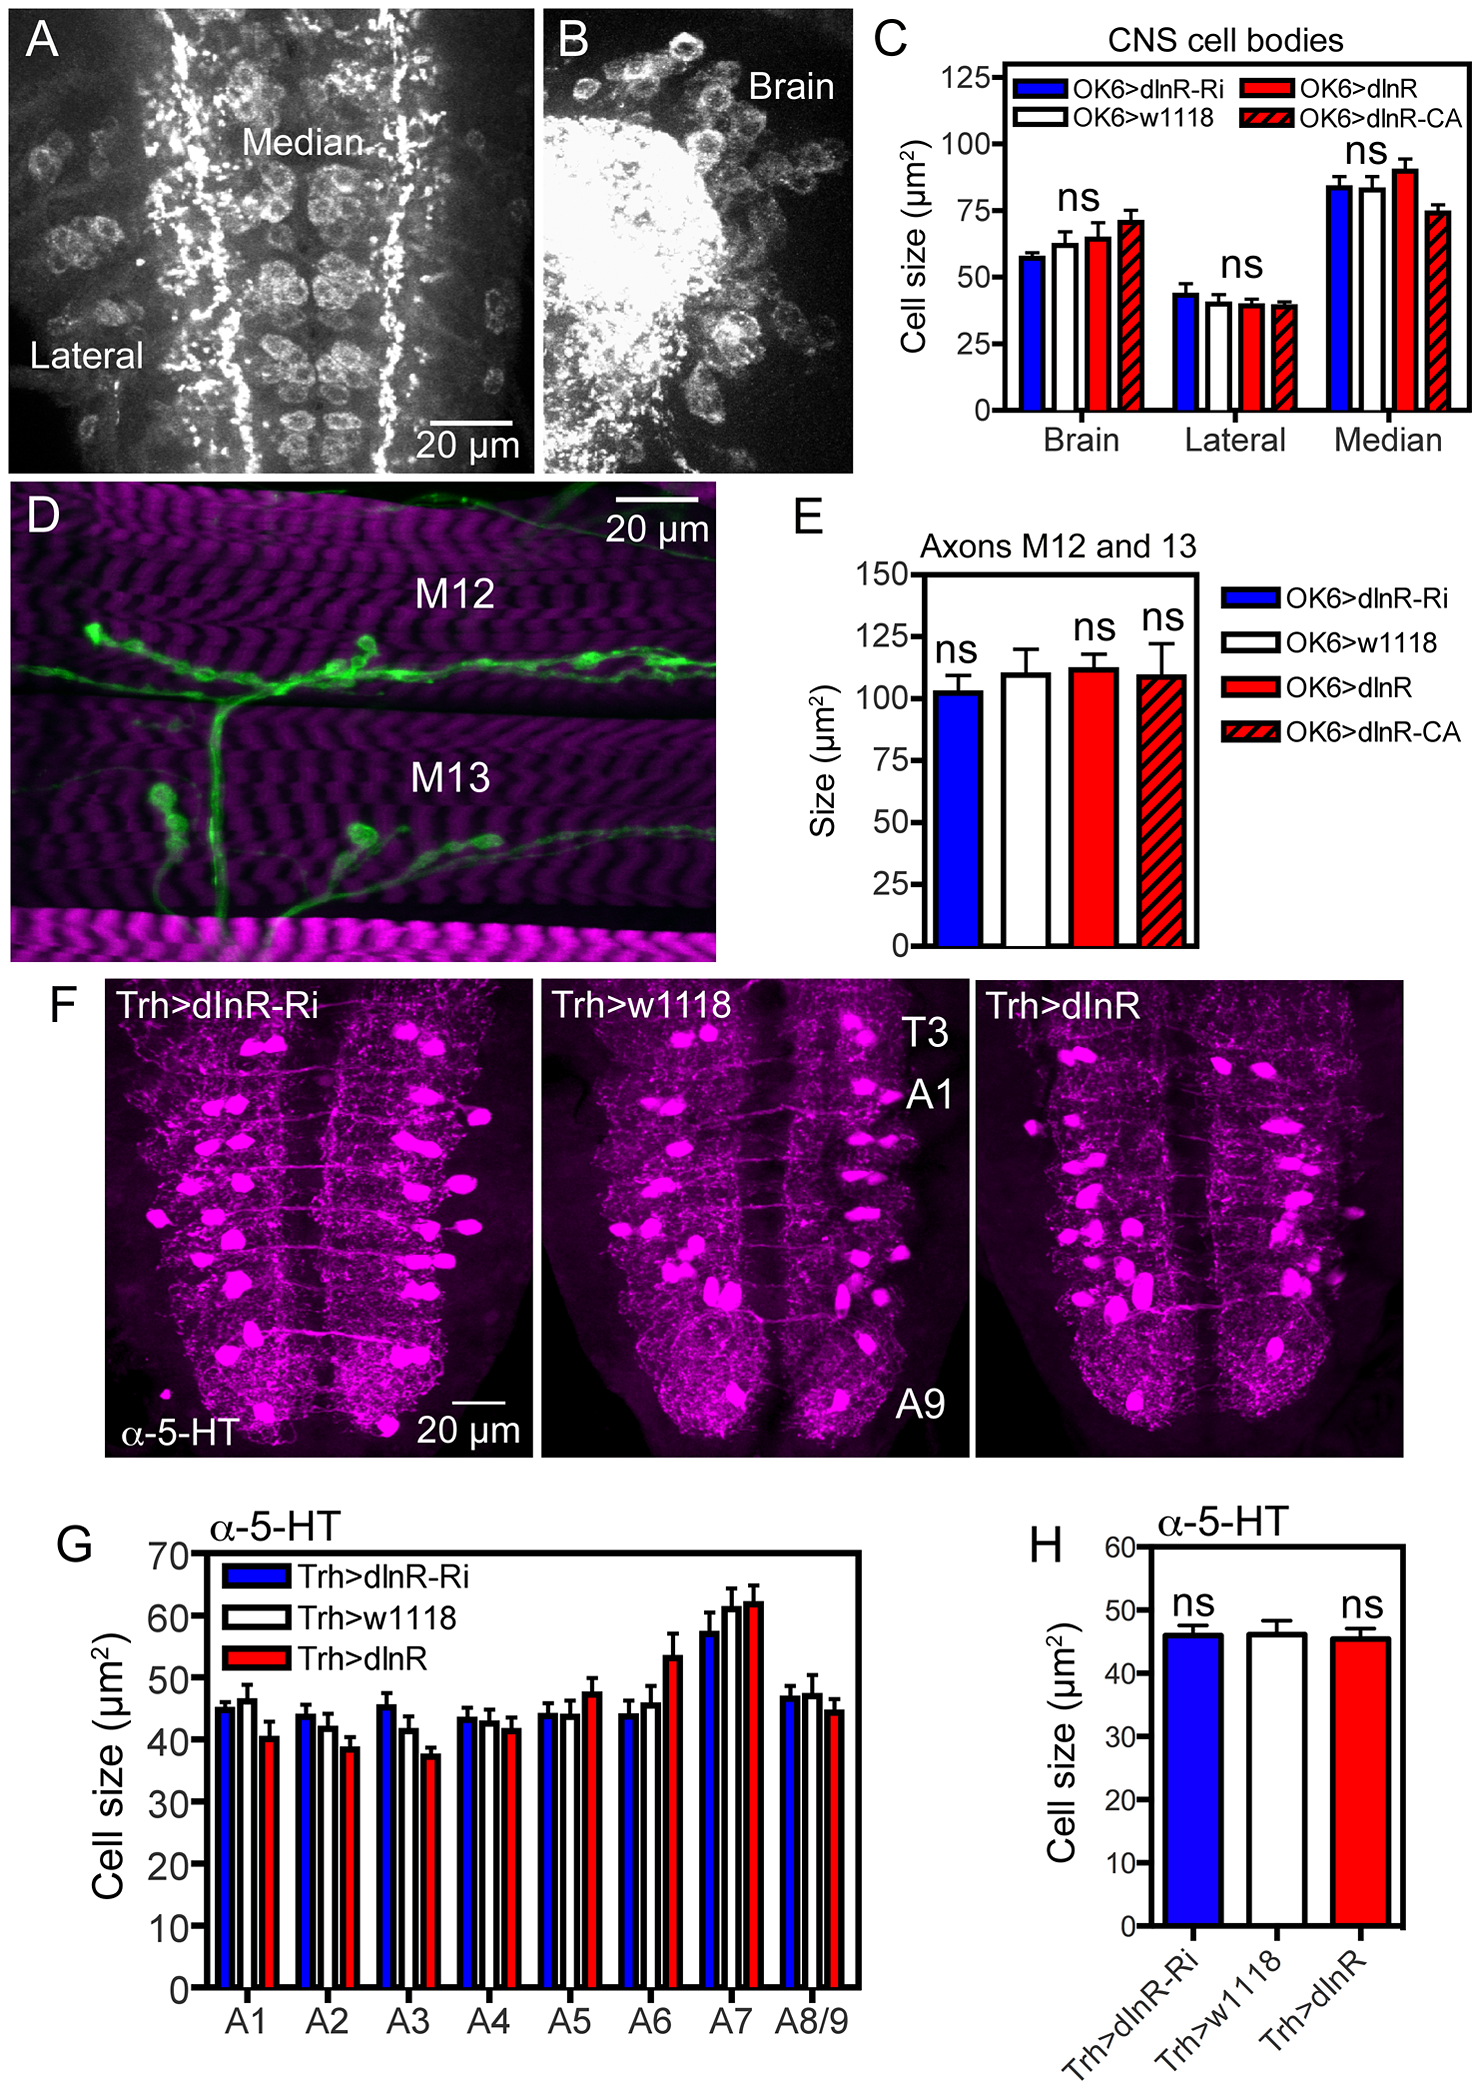 Manipulations of dInR expression in interneurons and motor neurons do not affect cell body size.